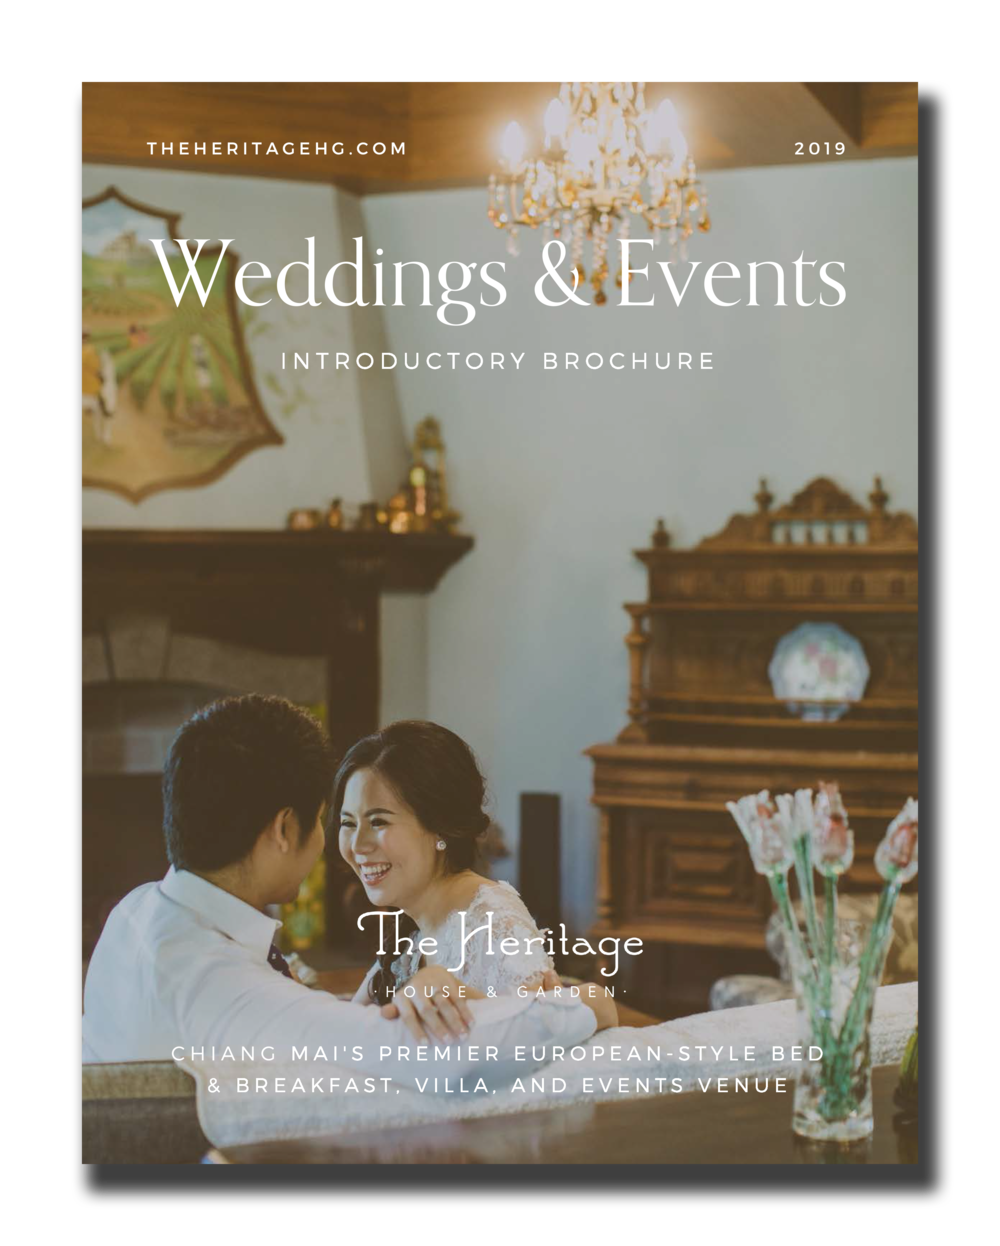 weddings_events_brochure-1.png